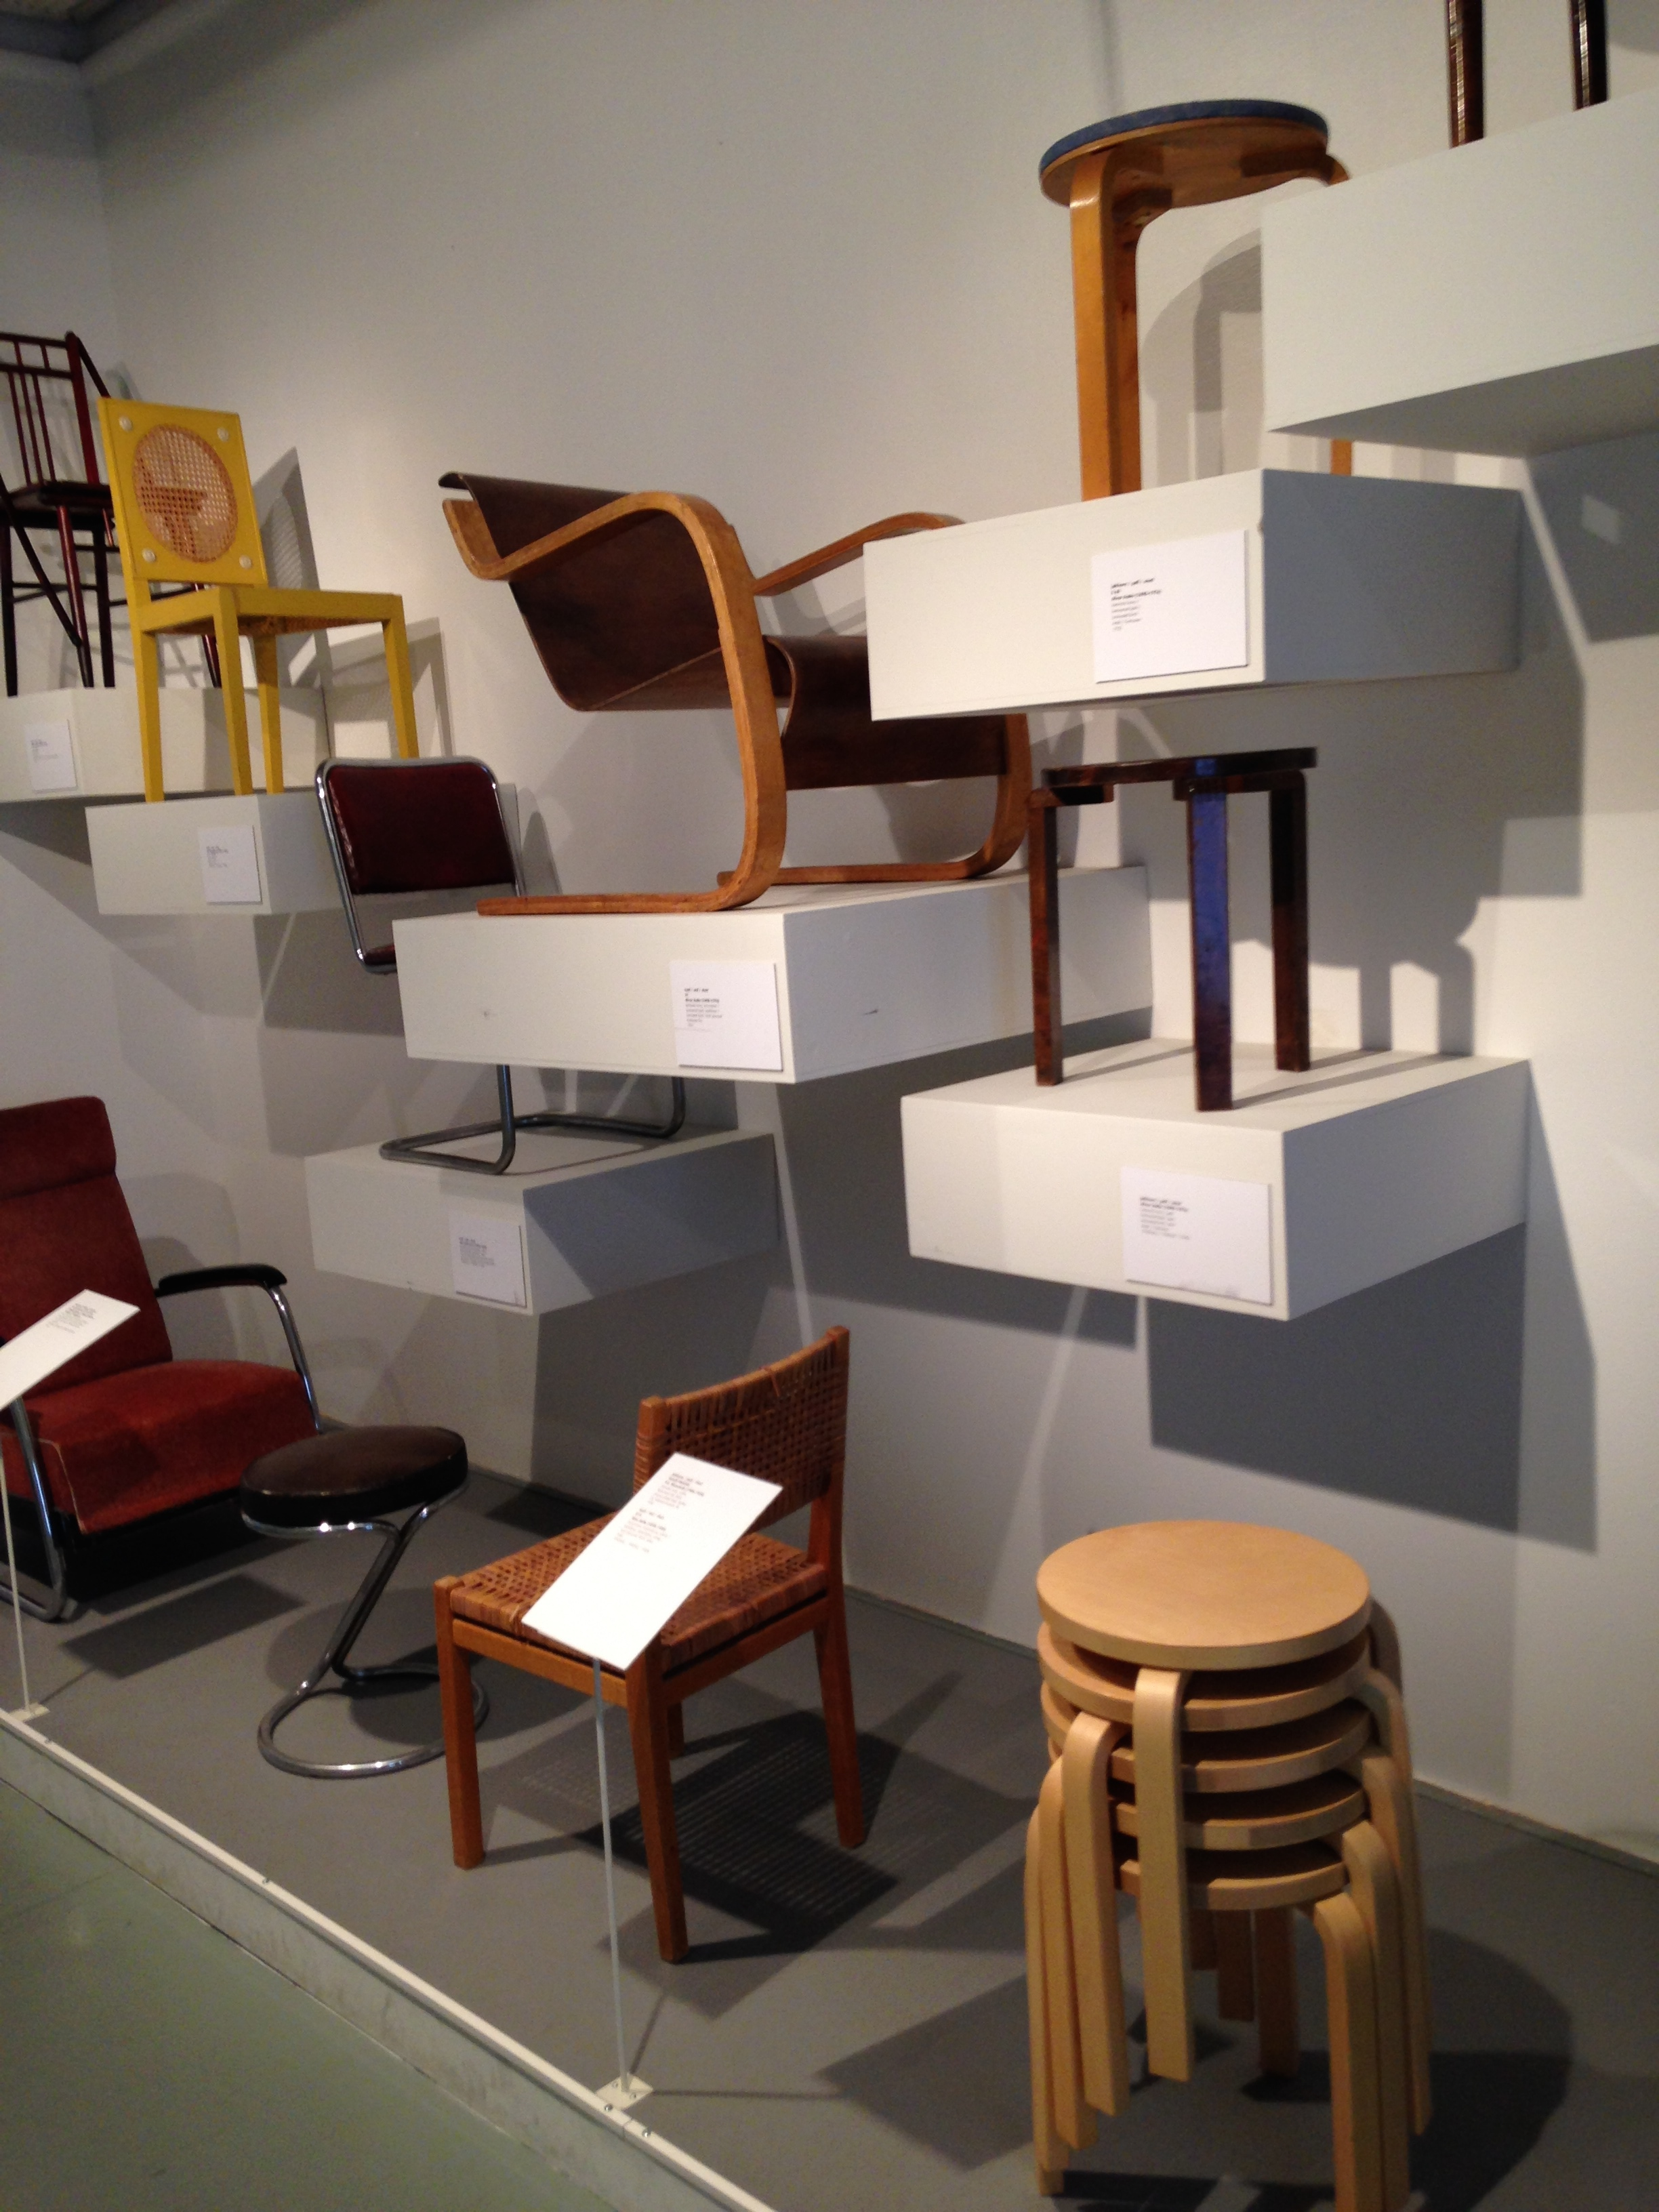 Classic Finnish furniture design at the Design Museum.